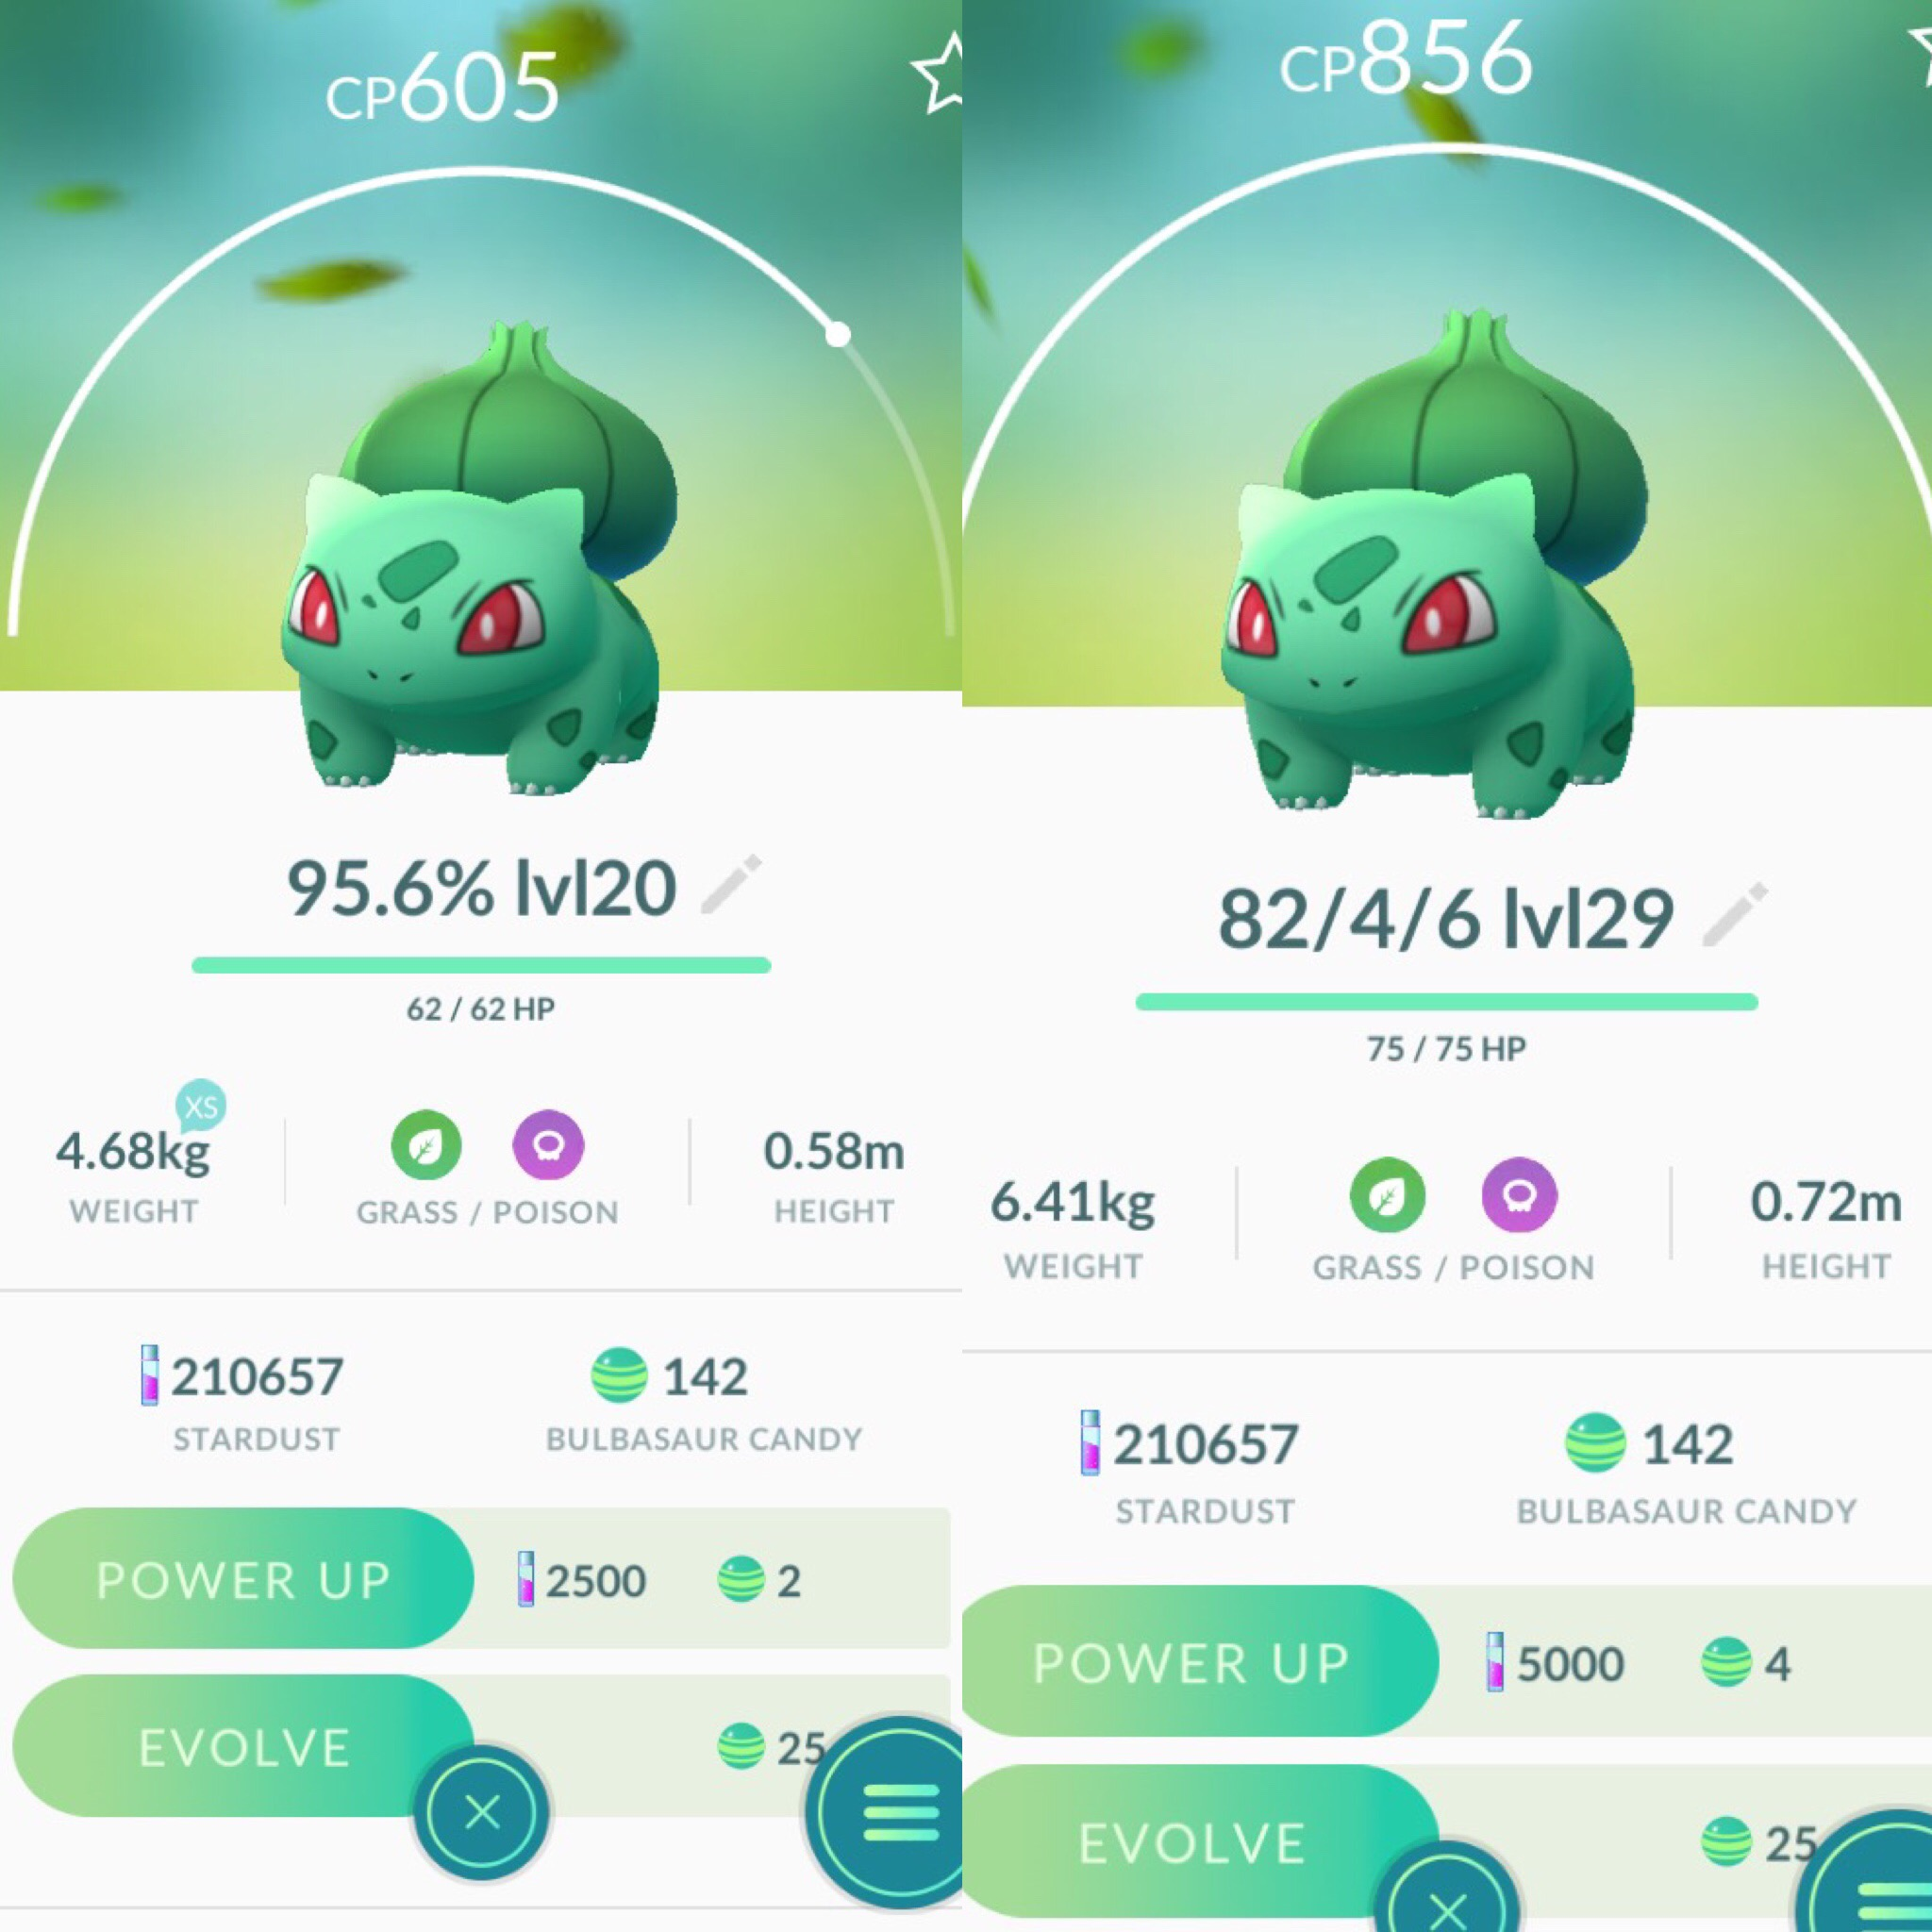 What level does Bulbasaur have to be before evolving?